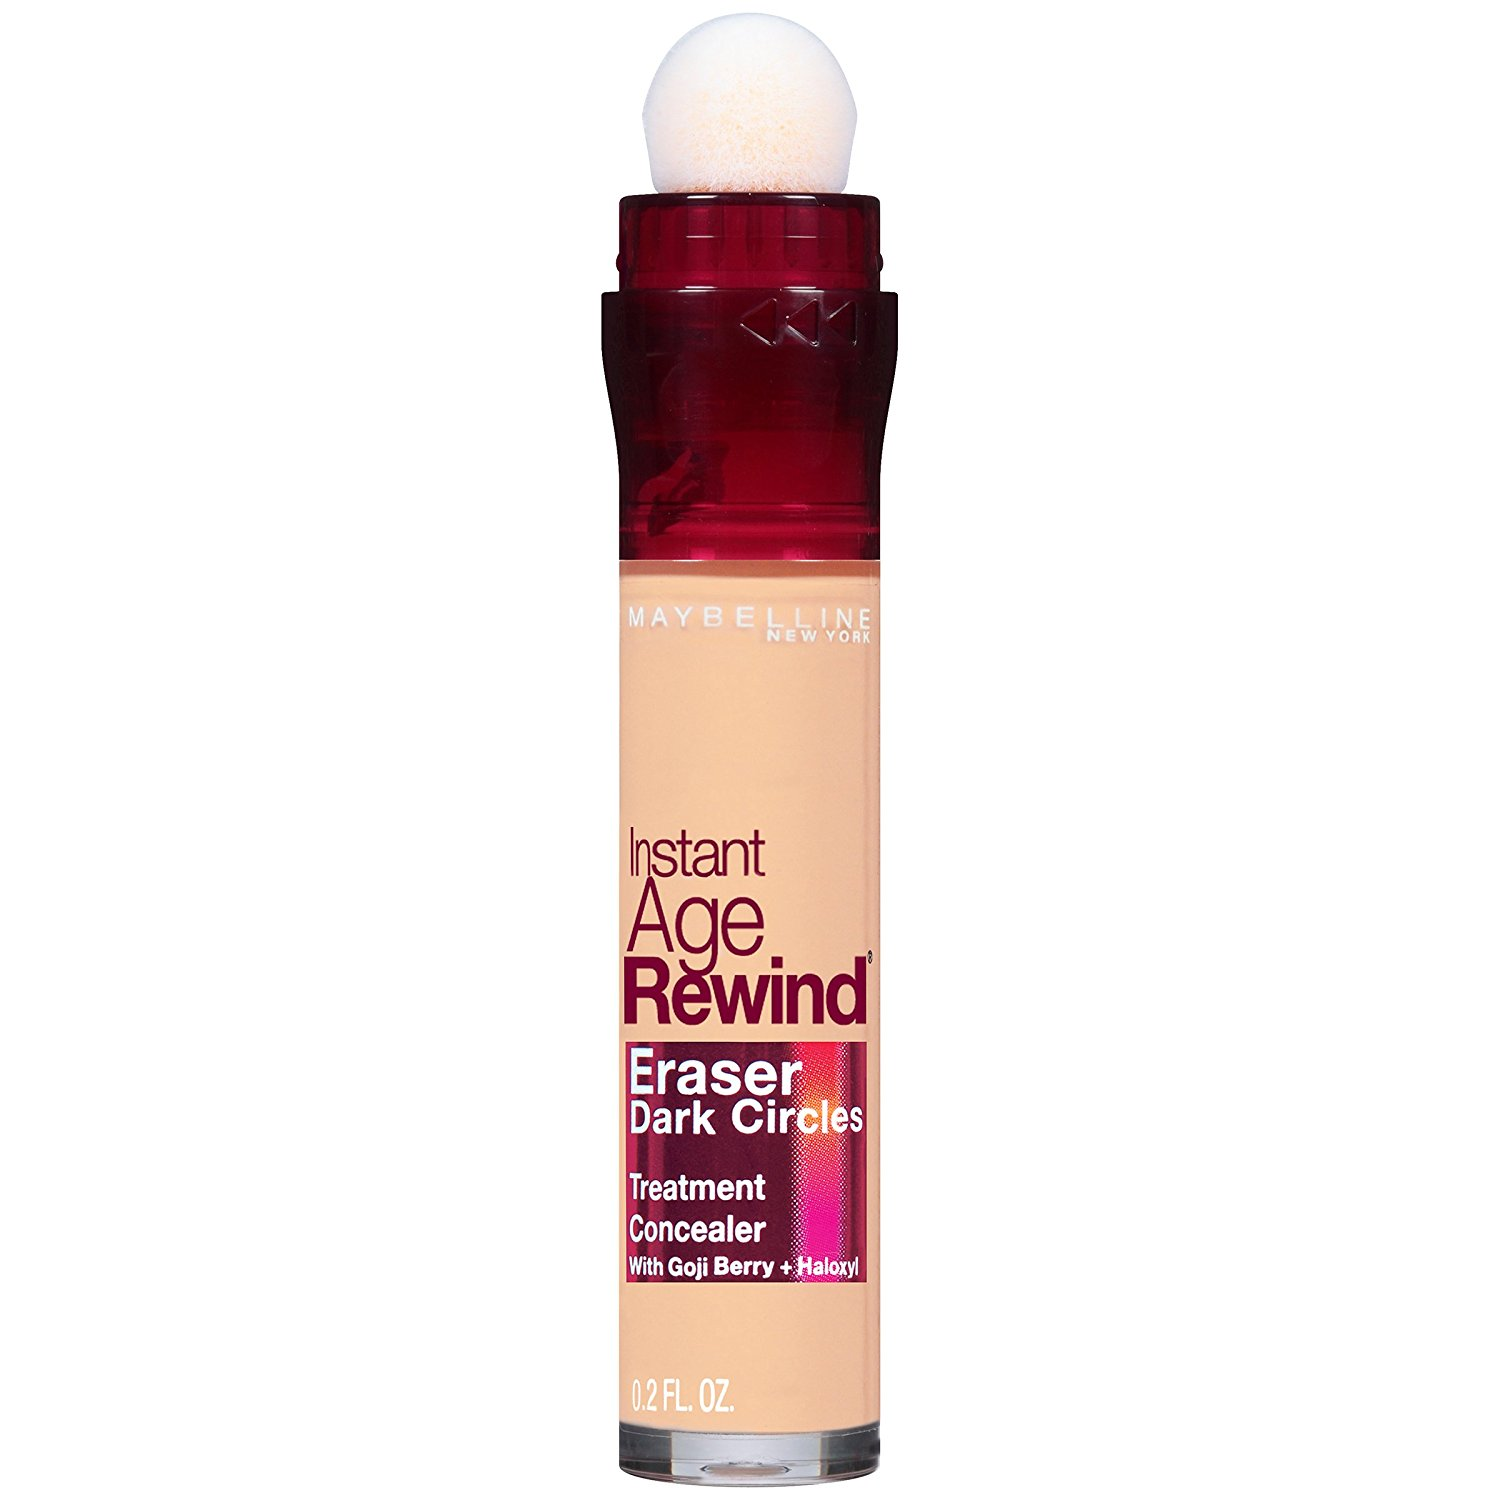 Maybelline Instant Age Rewind Dark Circle Eraser in Pakistan